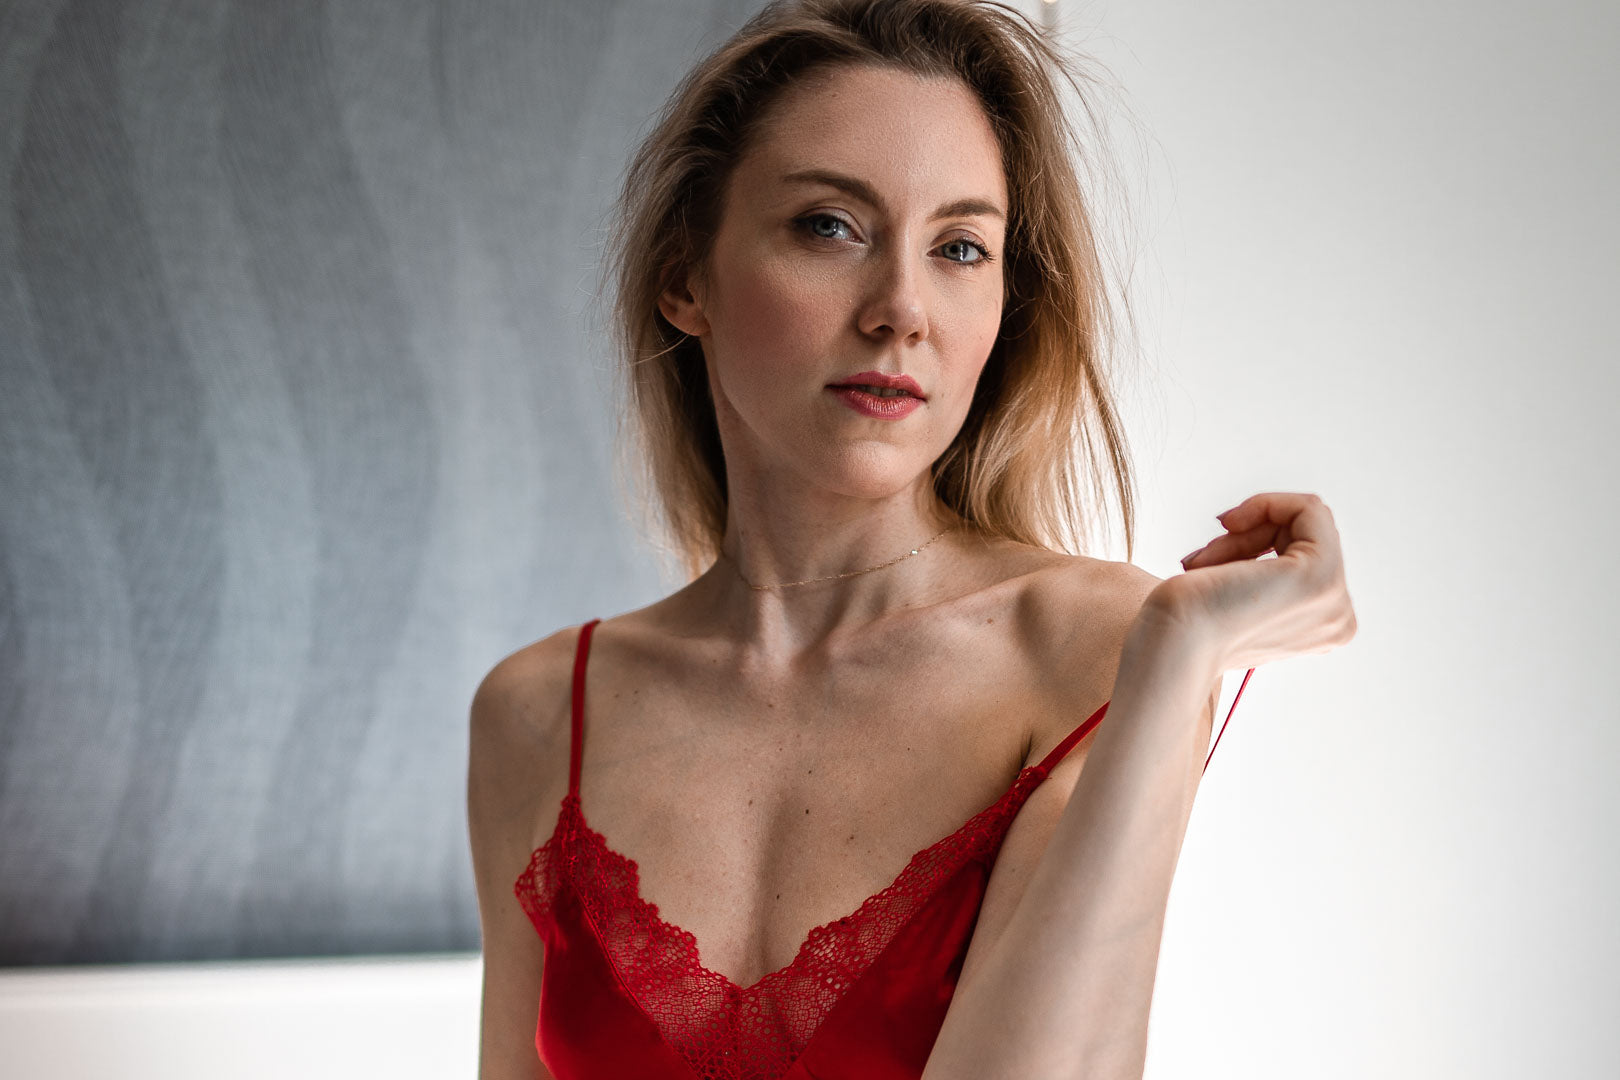 Woman model in red satin lingerie posing in a room